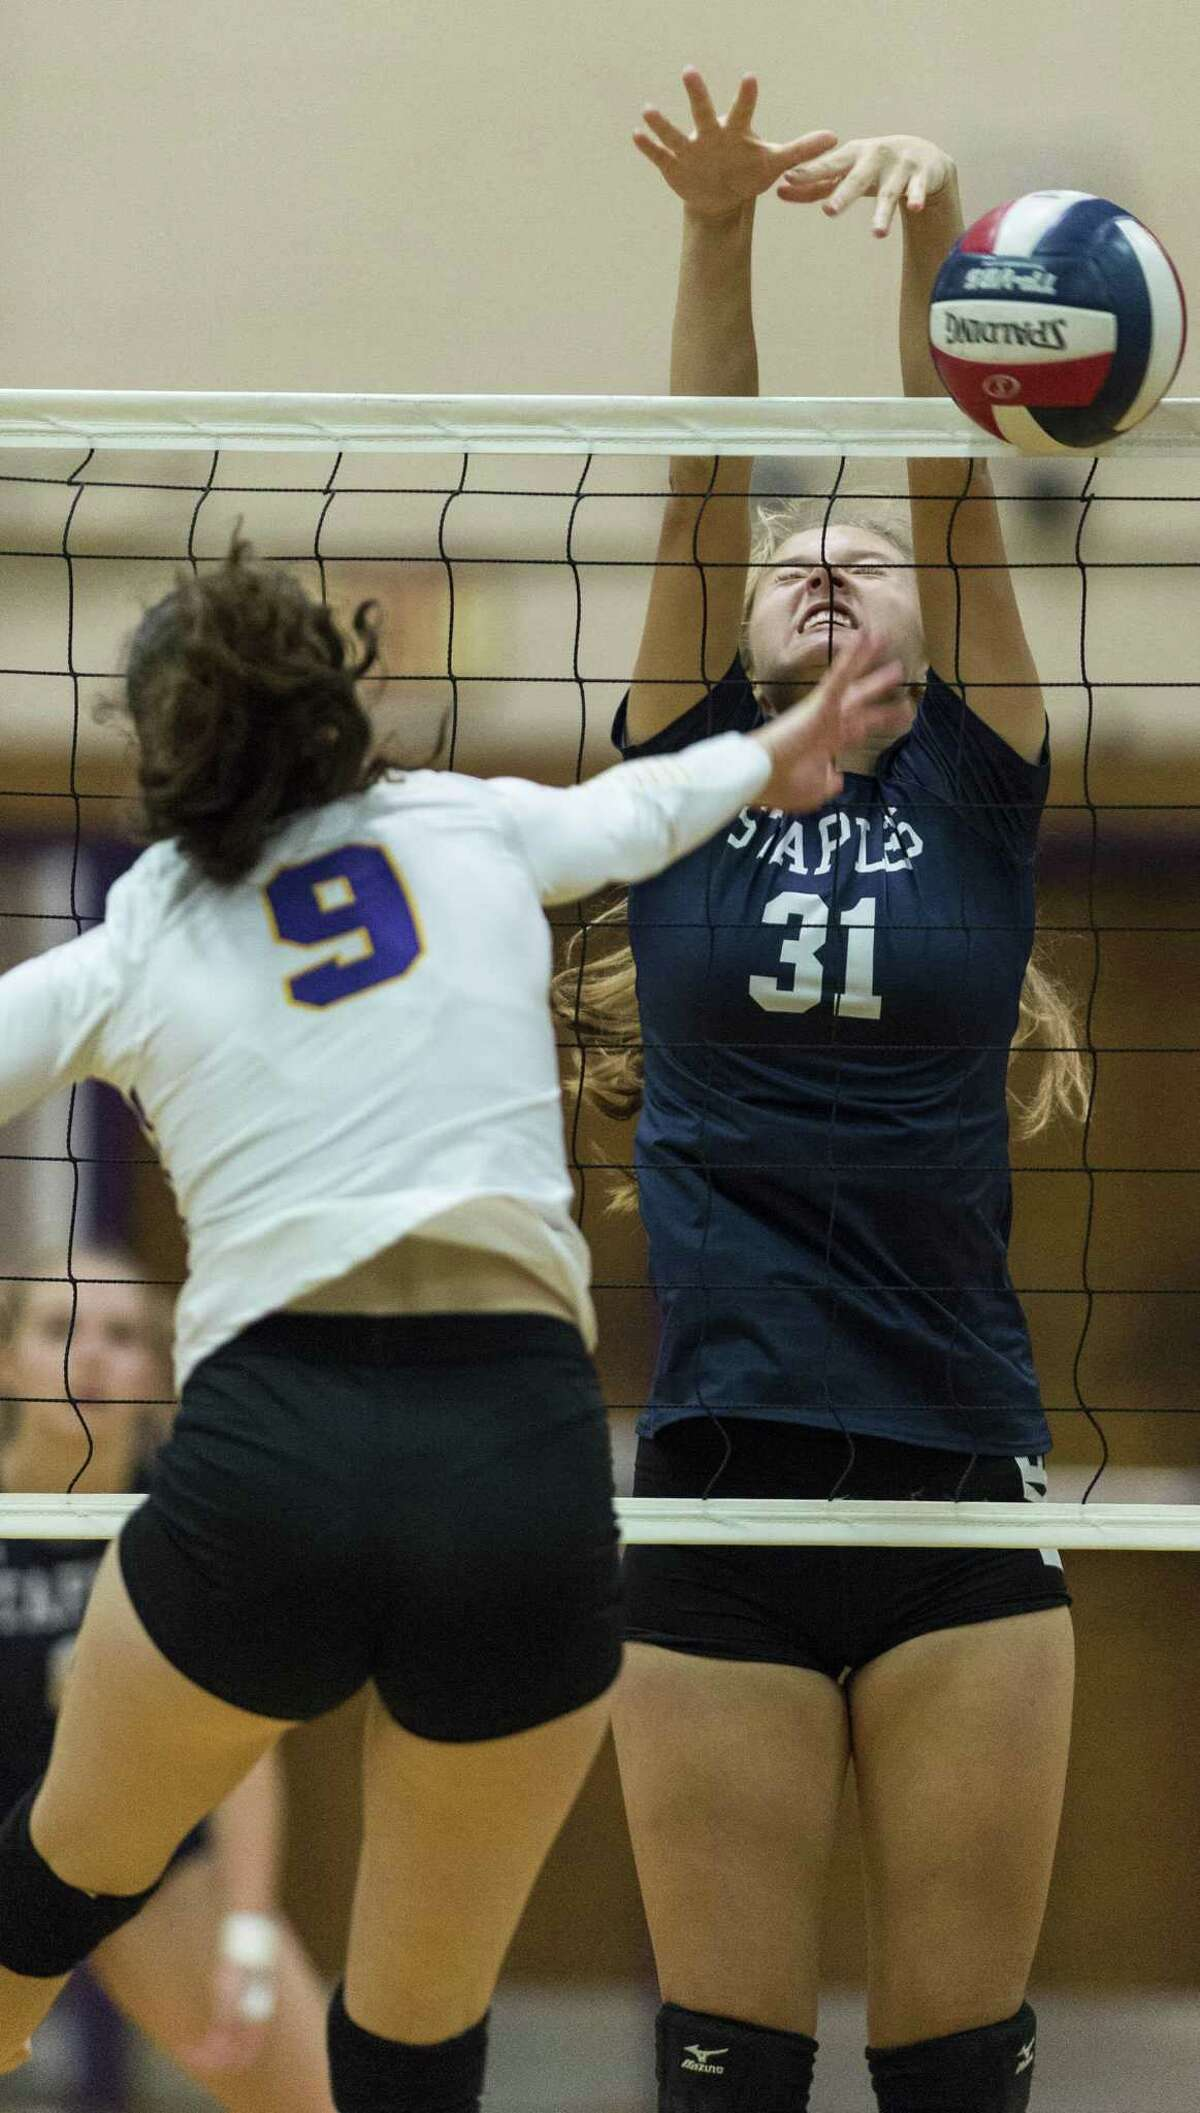 Staples High School against Westhill High School during a girls volleyball game played at Westhill High School, Wednesday, October 11, 2017.